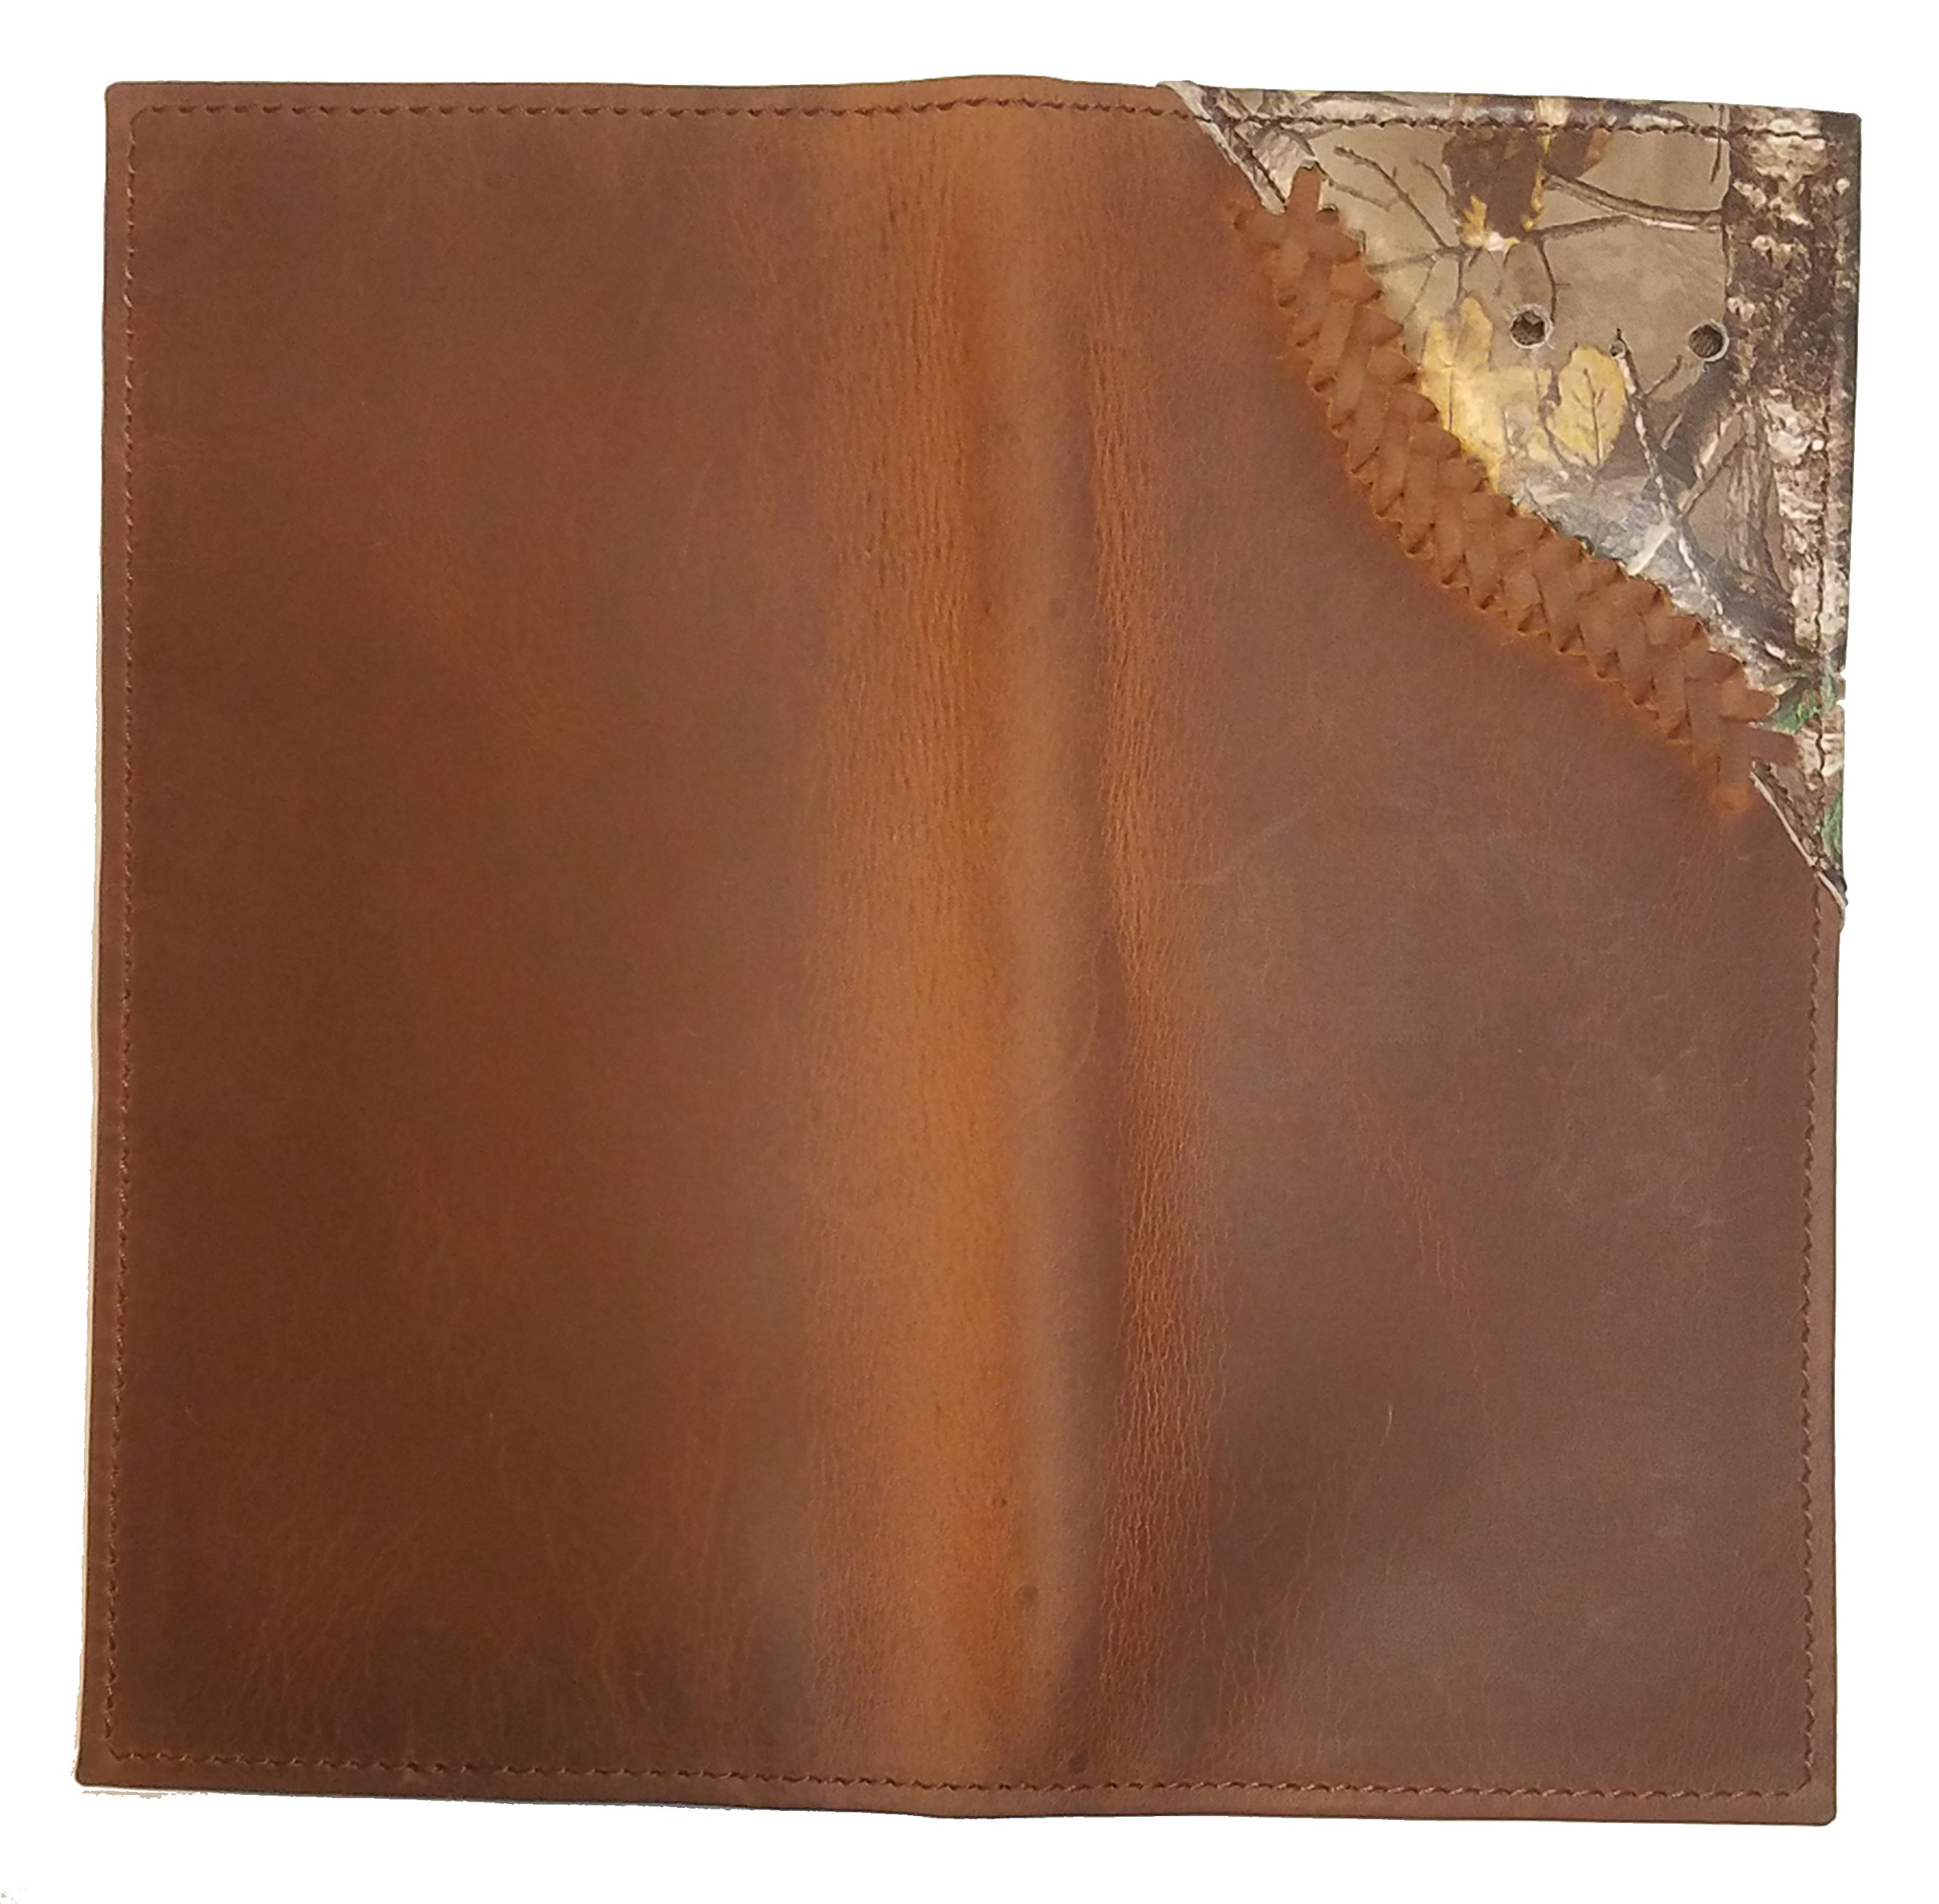 Origional Buck Camo Corner long wallet by Genuine Texas Brand (Image #3)